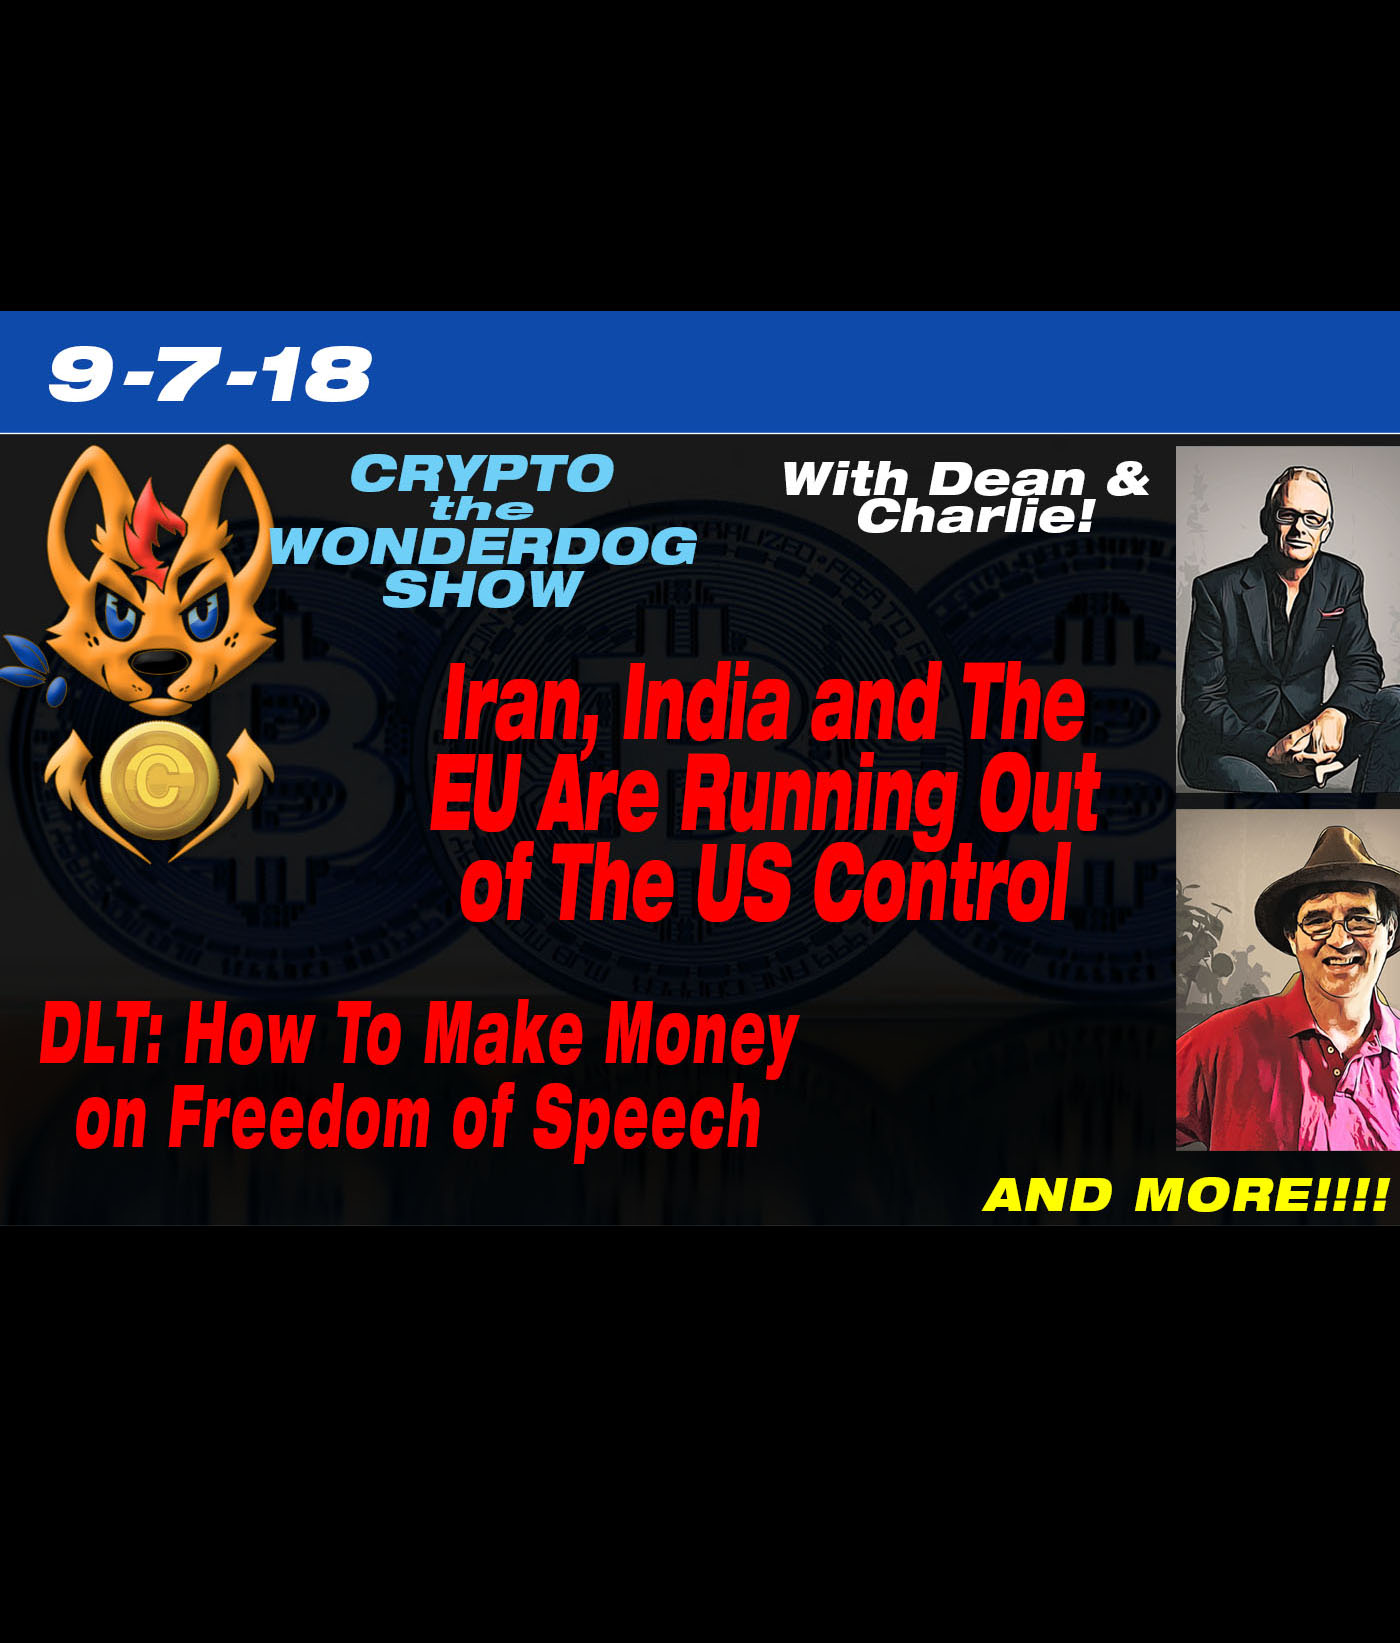 9-7-18 - Dean and Charlie - NEWS on Crypto the WonderDog show - Iran, India and The EU Are Running Out of The US Control - DLT: How To Make Money on Freedom of Speech